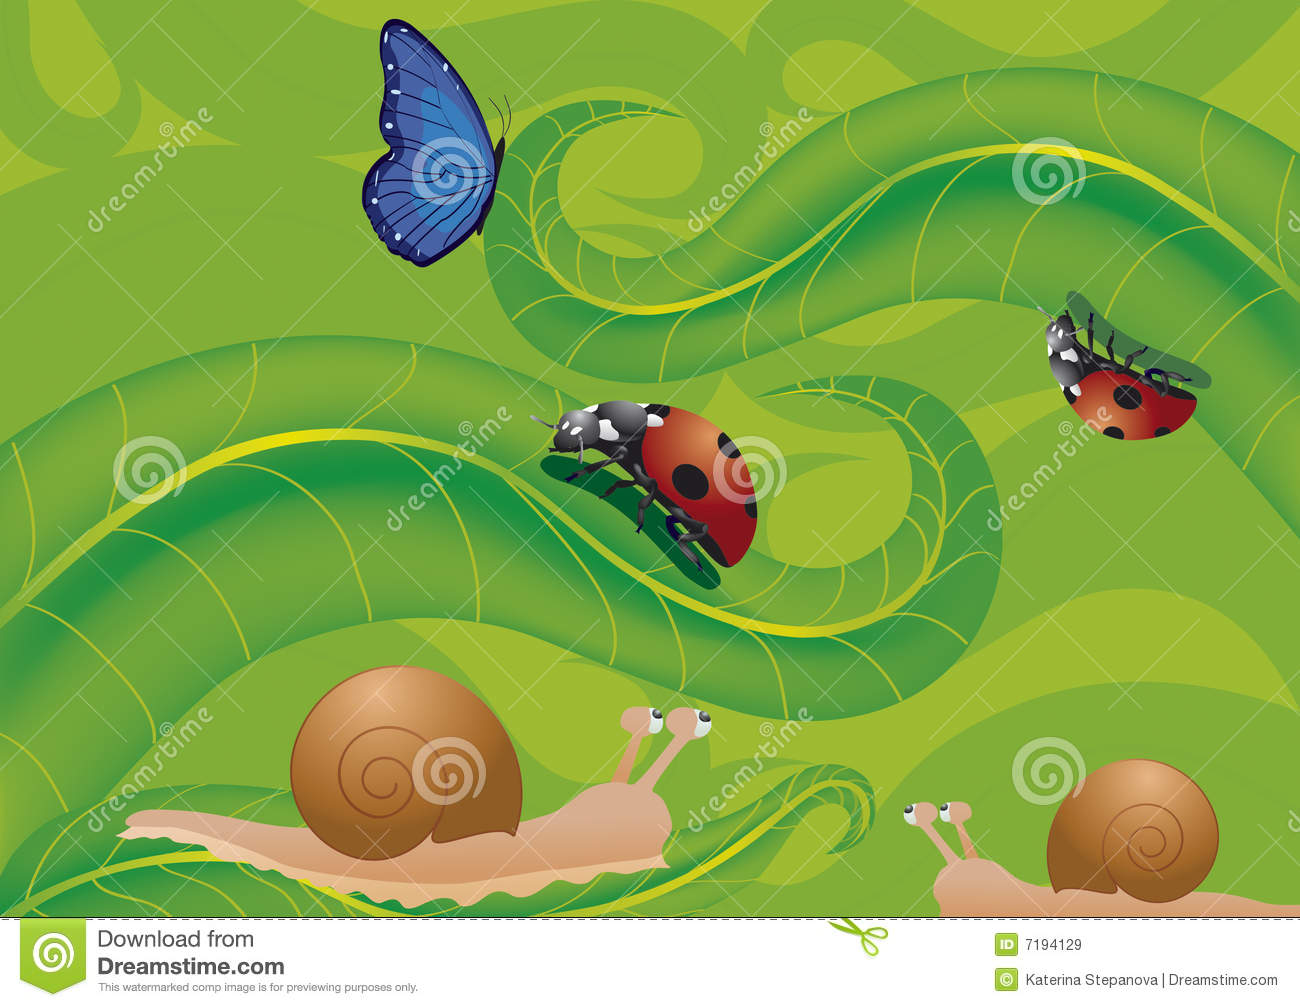 Ladybird Butterfly And Snails Stock Vector - Illustration ...